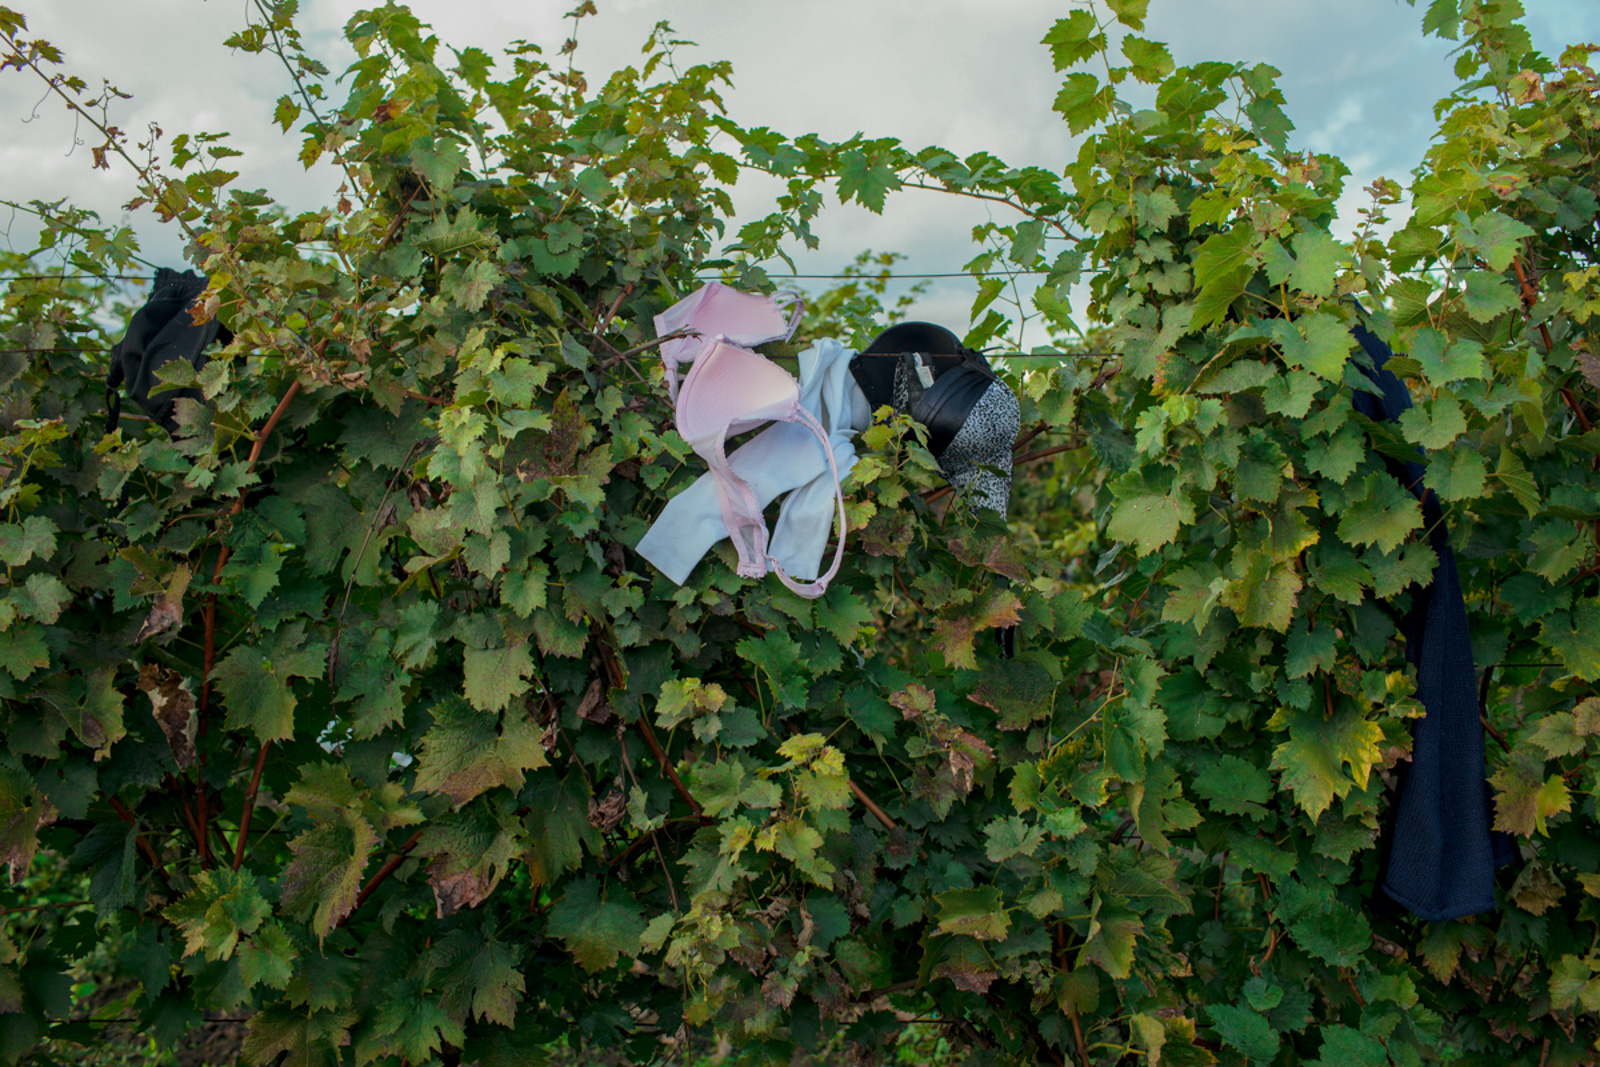 Bapska, Croatia - October 5, 2015: An abandoned bra hangs on a wineyard, which serves as visual isolation to refugees and asylum seekers in need of a toilet or changing room as they crossed into Croatia from Serbia.